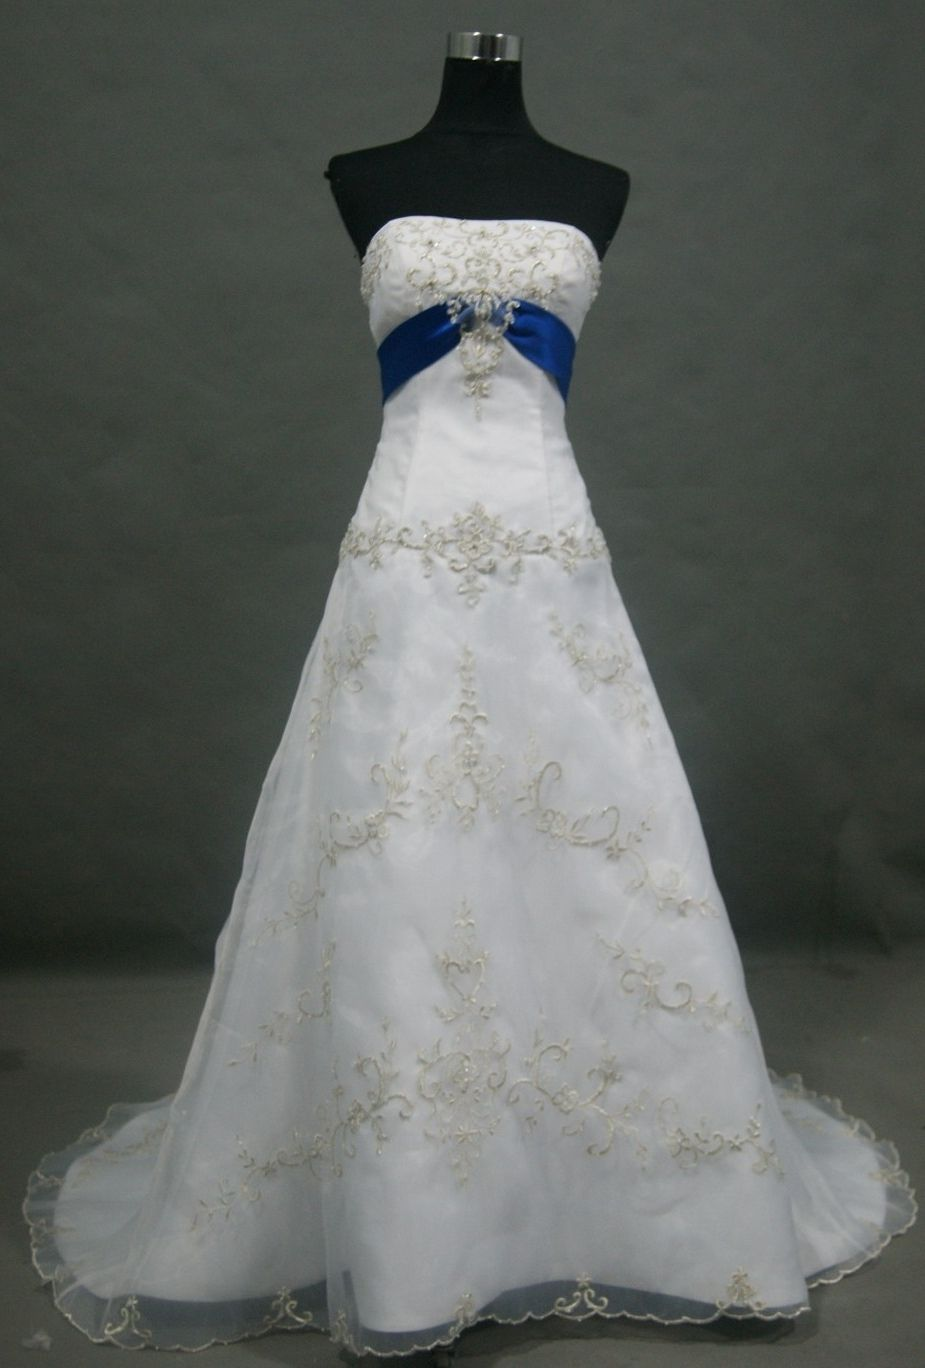 Wedding Gowns With Royal Blue Accents Blue Wedding Dress Royal Wedding Dress Blue Accent Blue Wedding Dresses